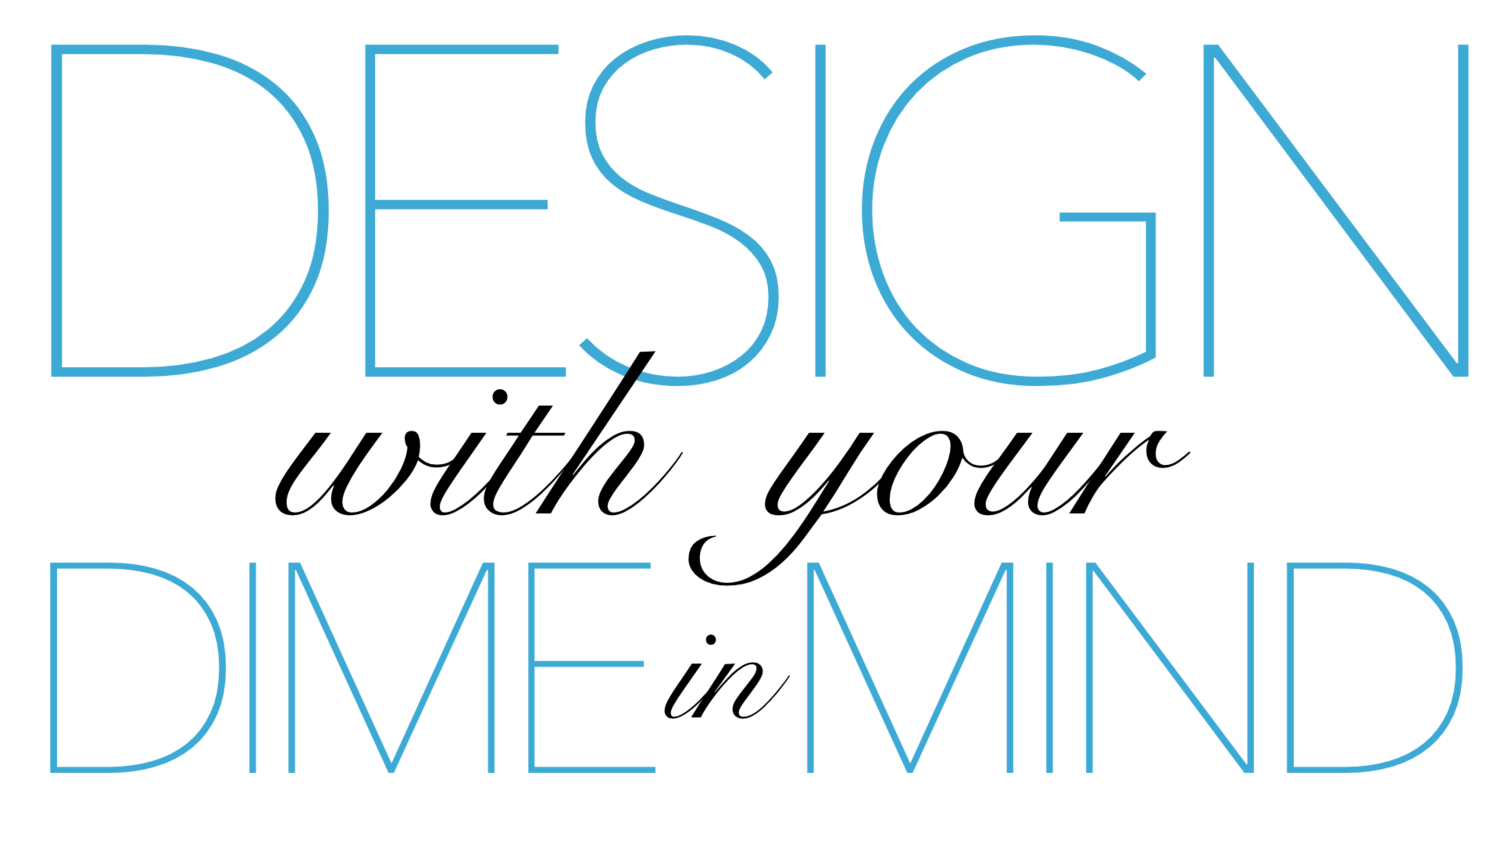 Design with Your Dime in Mind